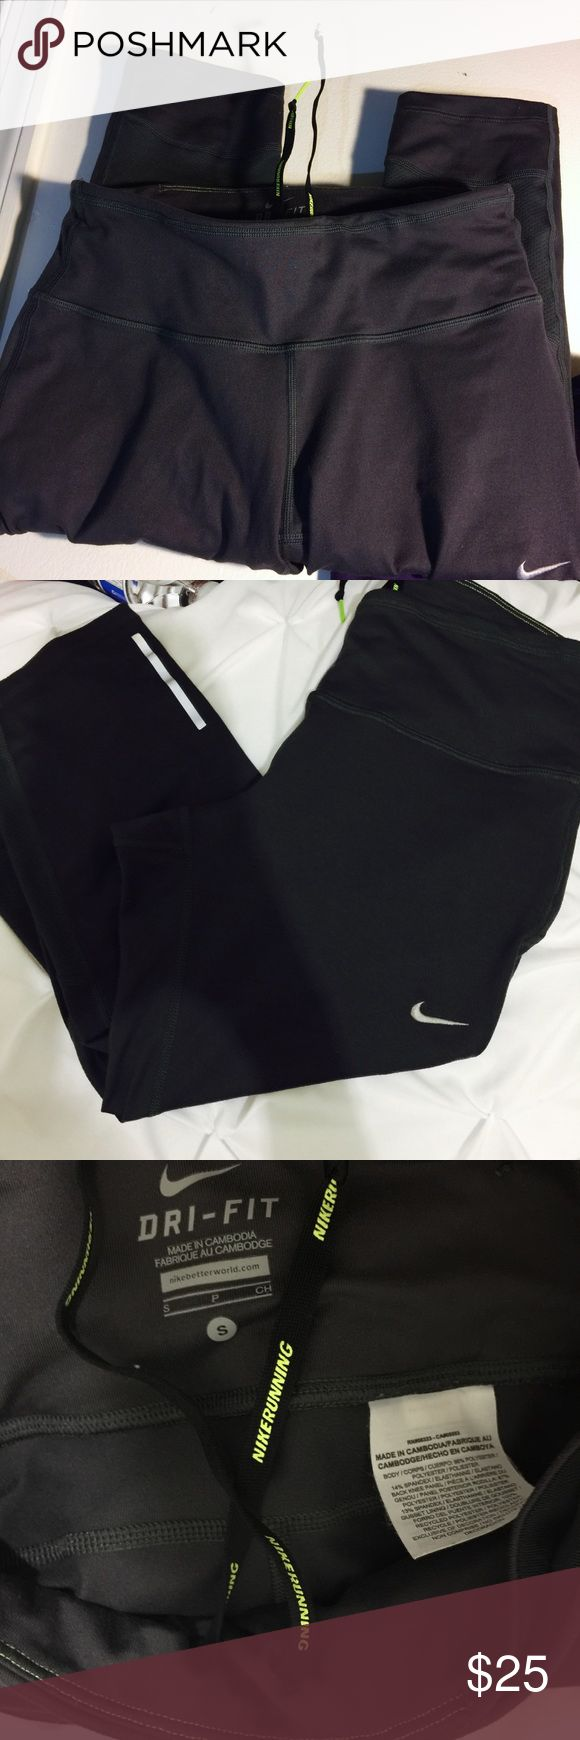 Nike running tights Nike cropped leggings, lightly worn. Has reflective details and mesh on the back of the knees for ventilation. Nike Pants